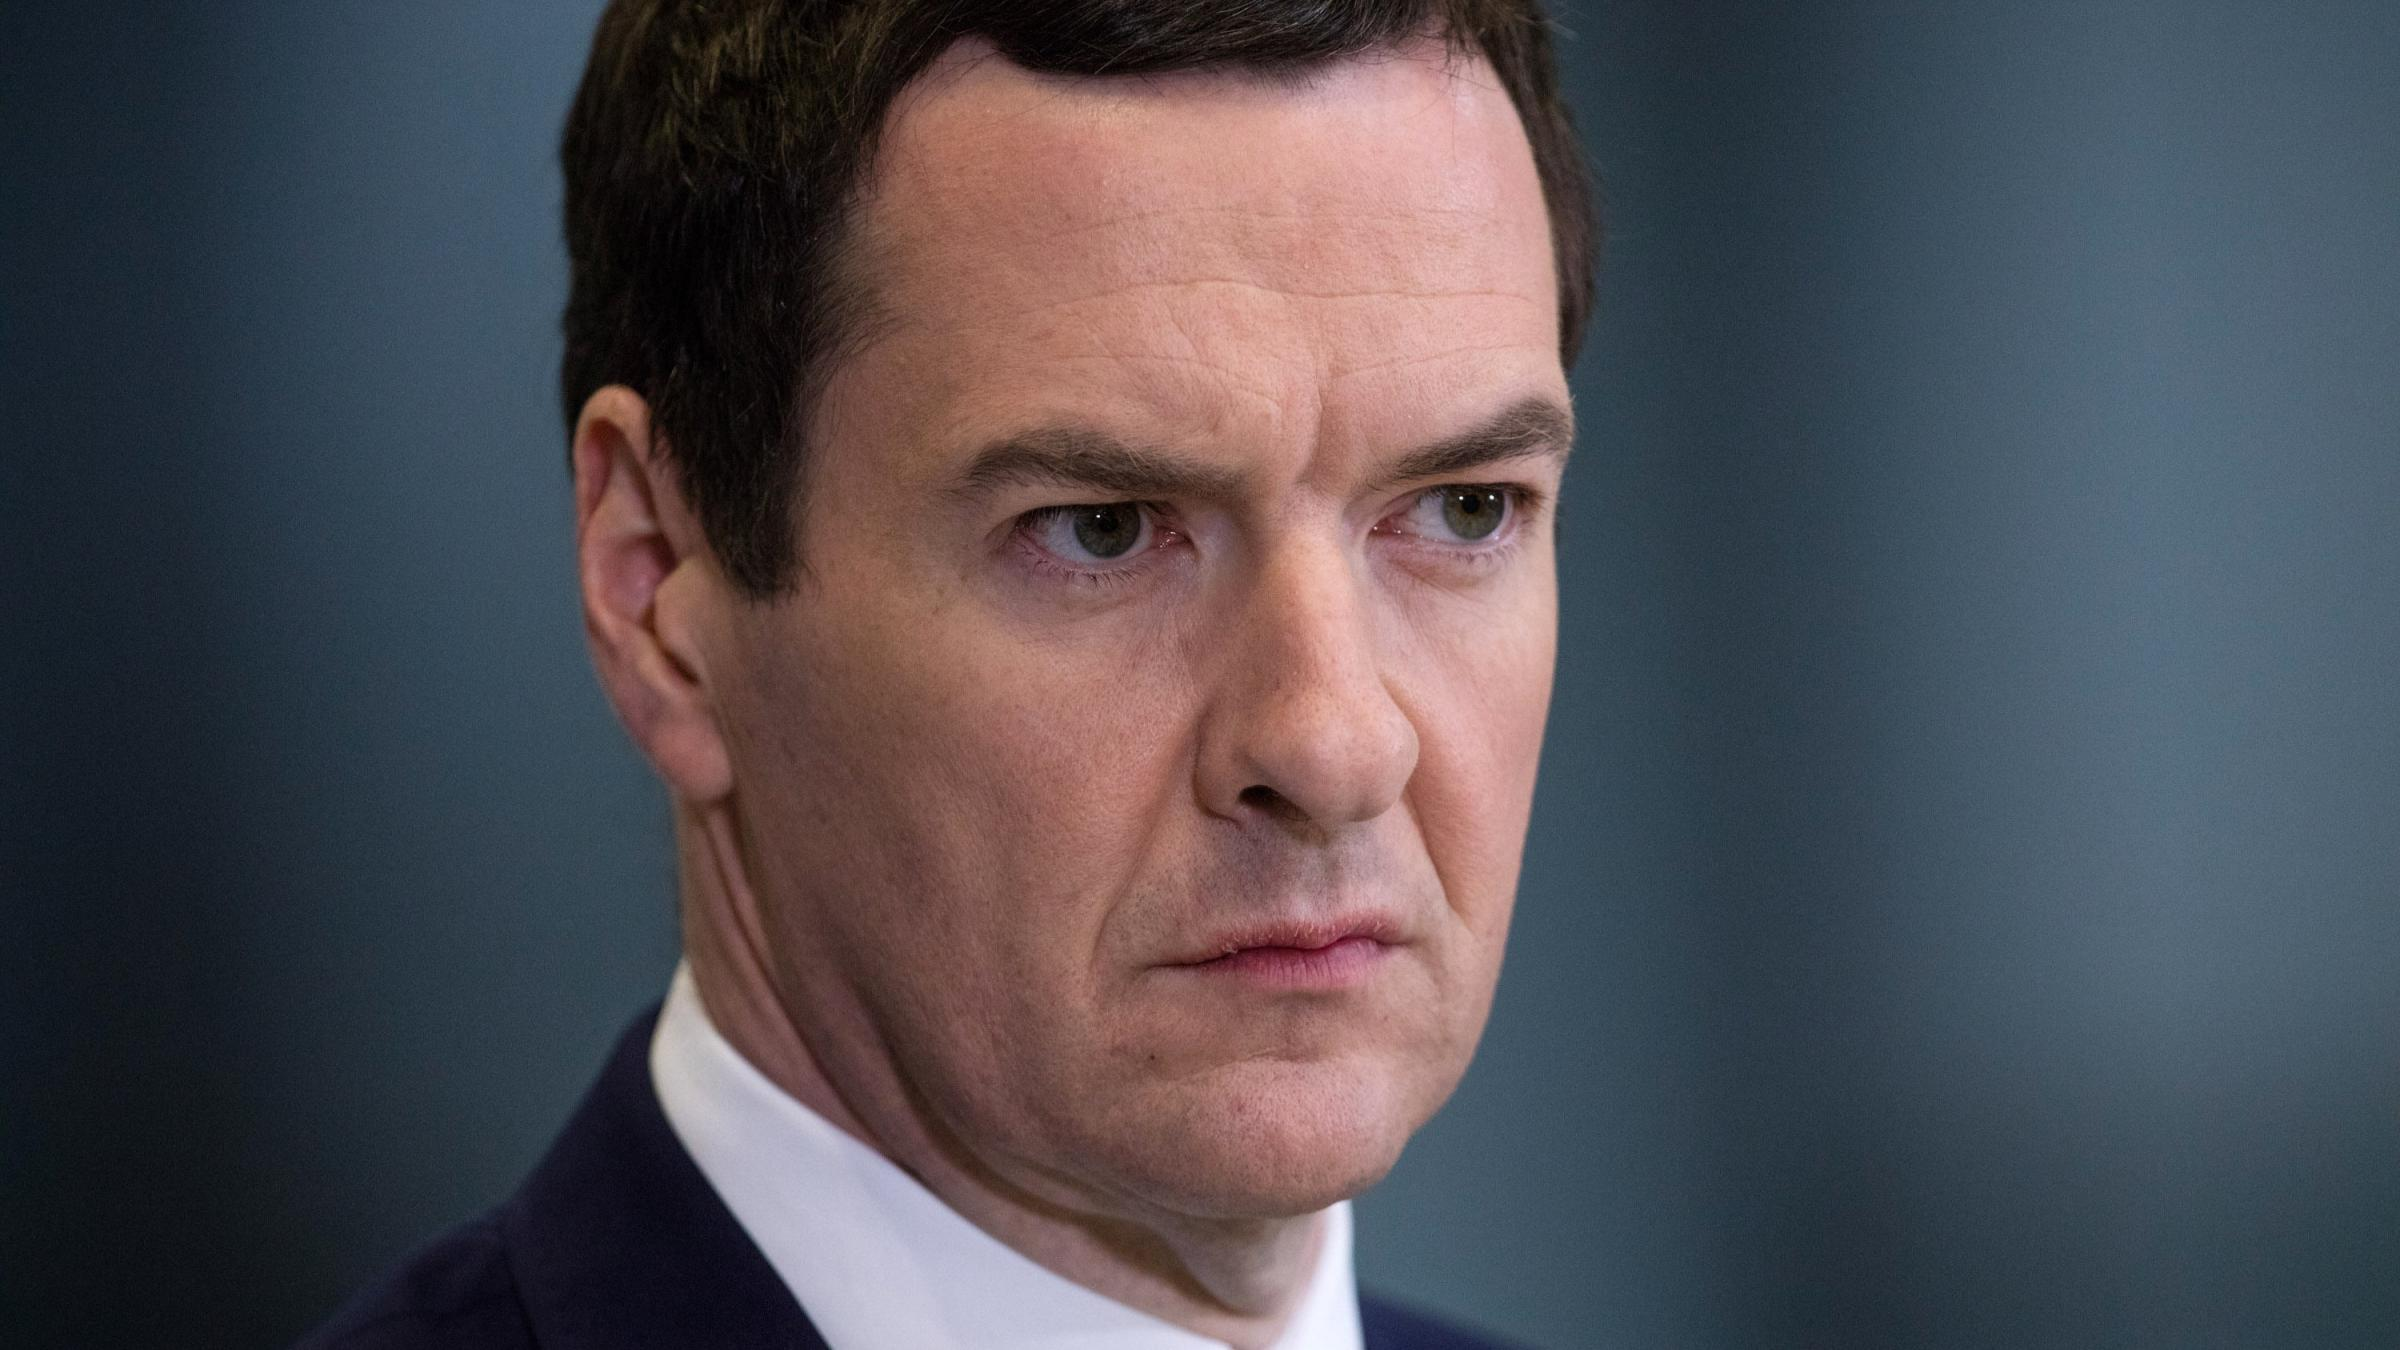 Change direction on Brexit or risk losing power, Osborne warns Tories